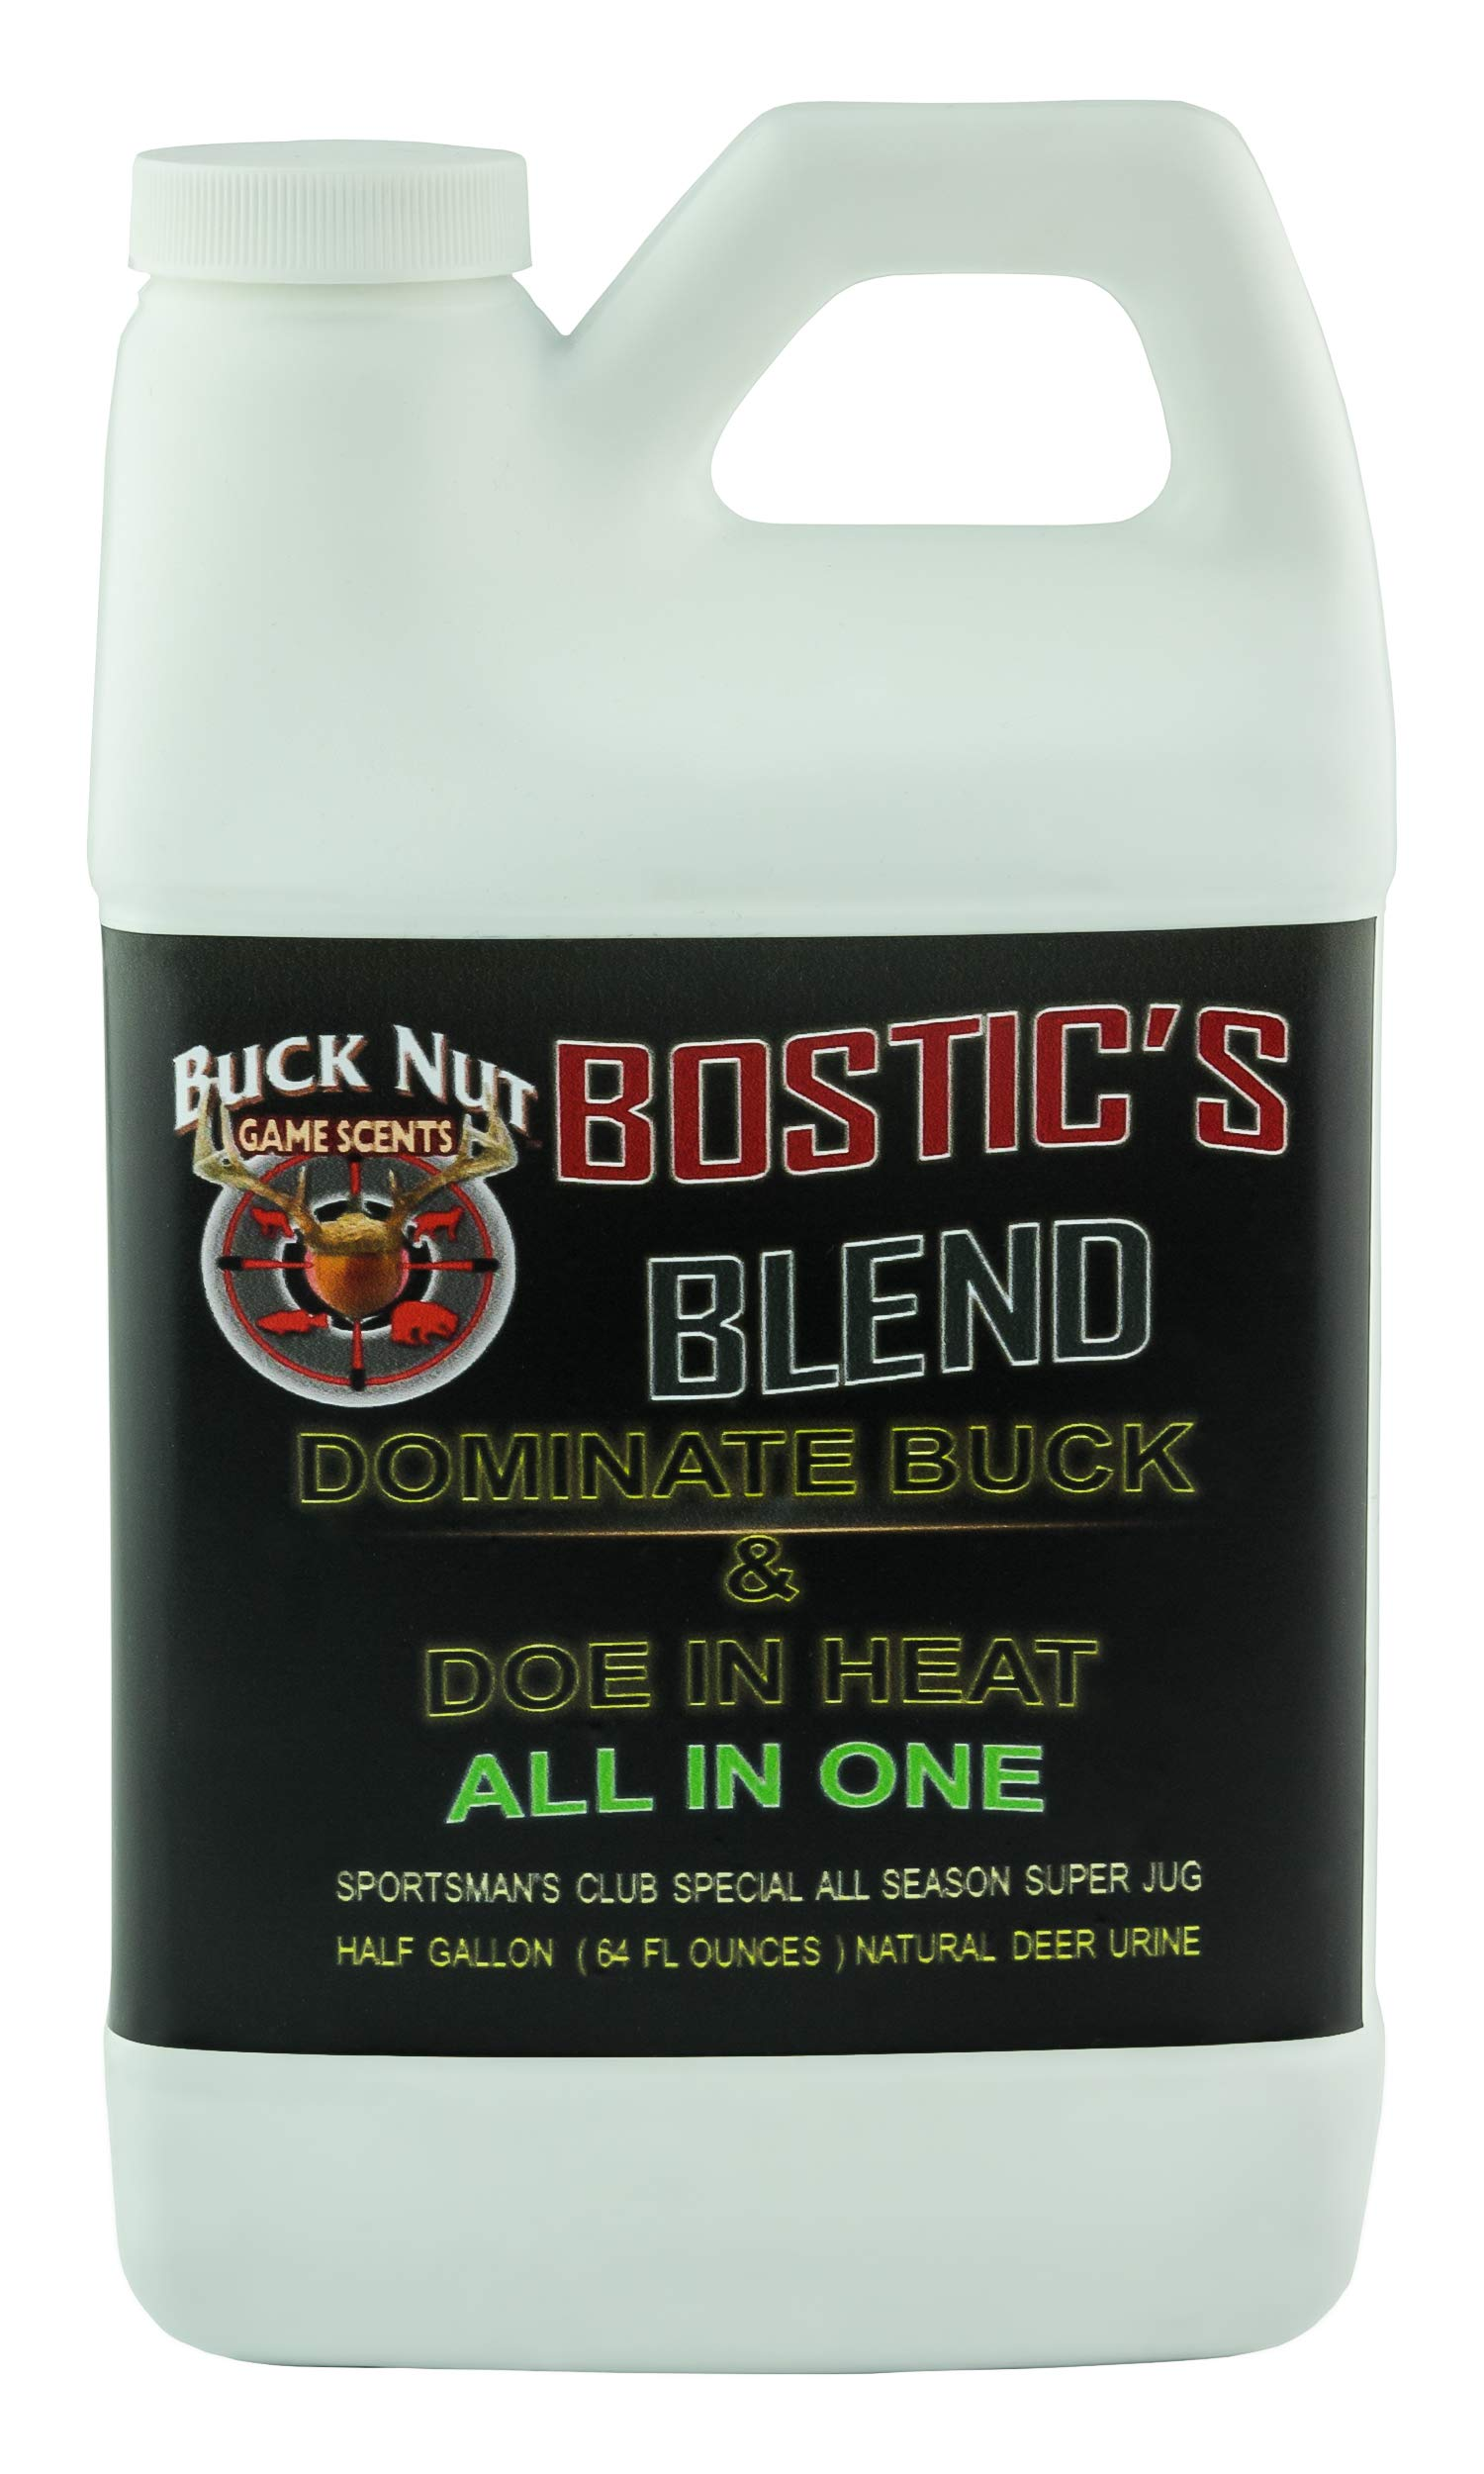 (64 0Z) Whitetail Buck in RUT/DOE in Heat Urine ESTRUS- Liquid Buck & DOE Urine by Buck Nut Deer Scents